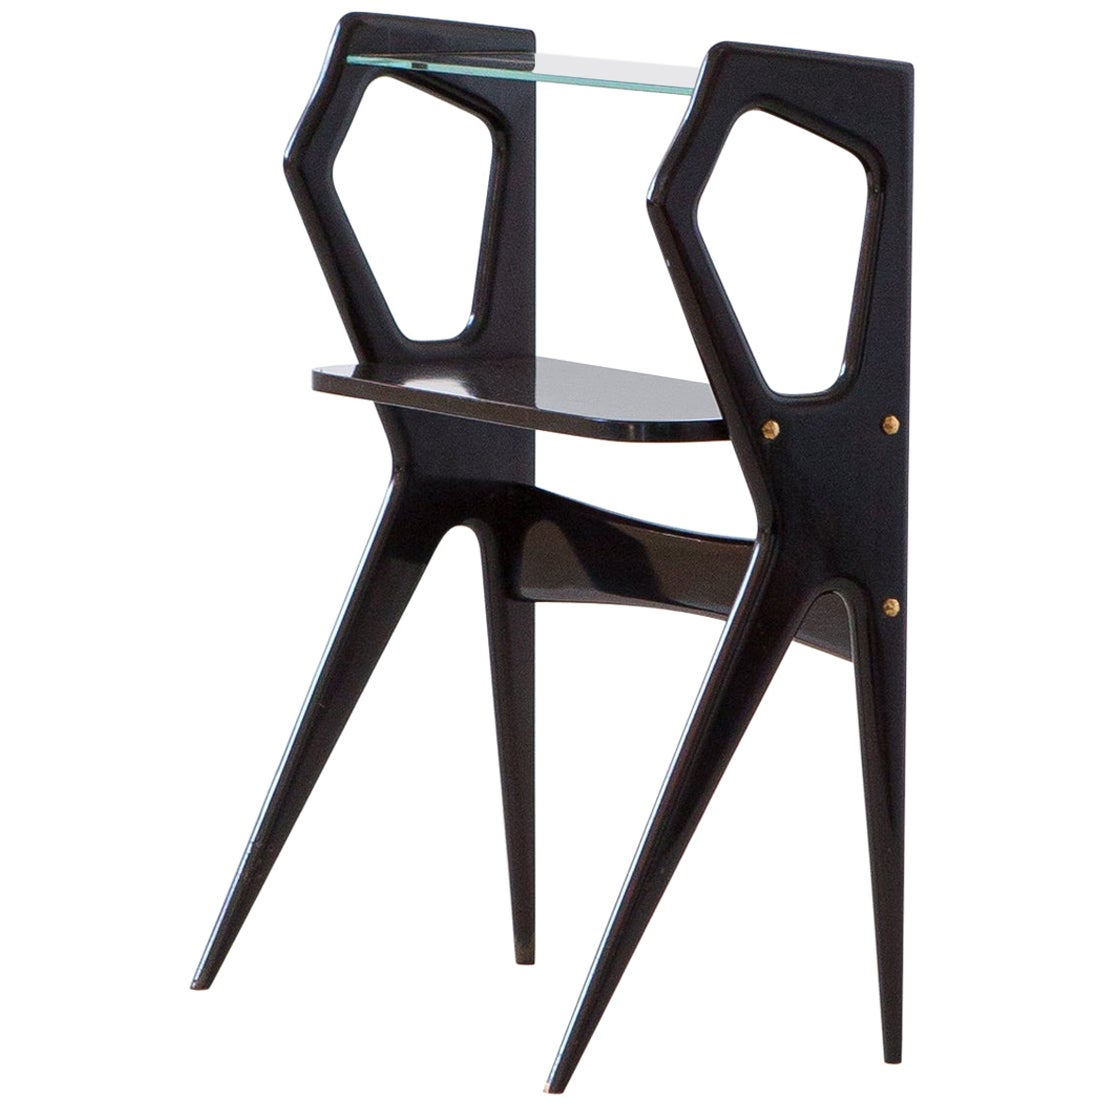 1950s Italian Modernist Lacquered Wood Side Table